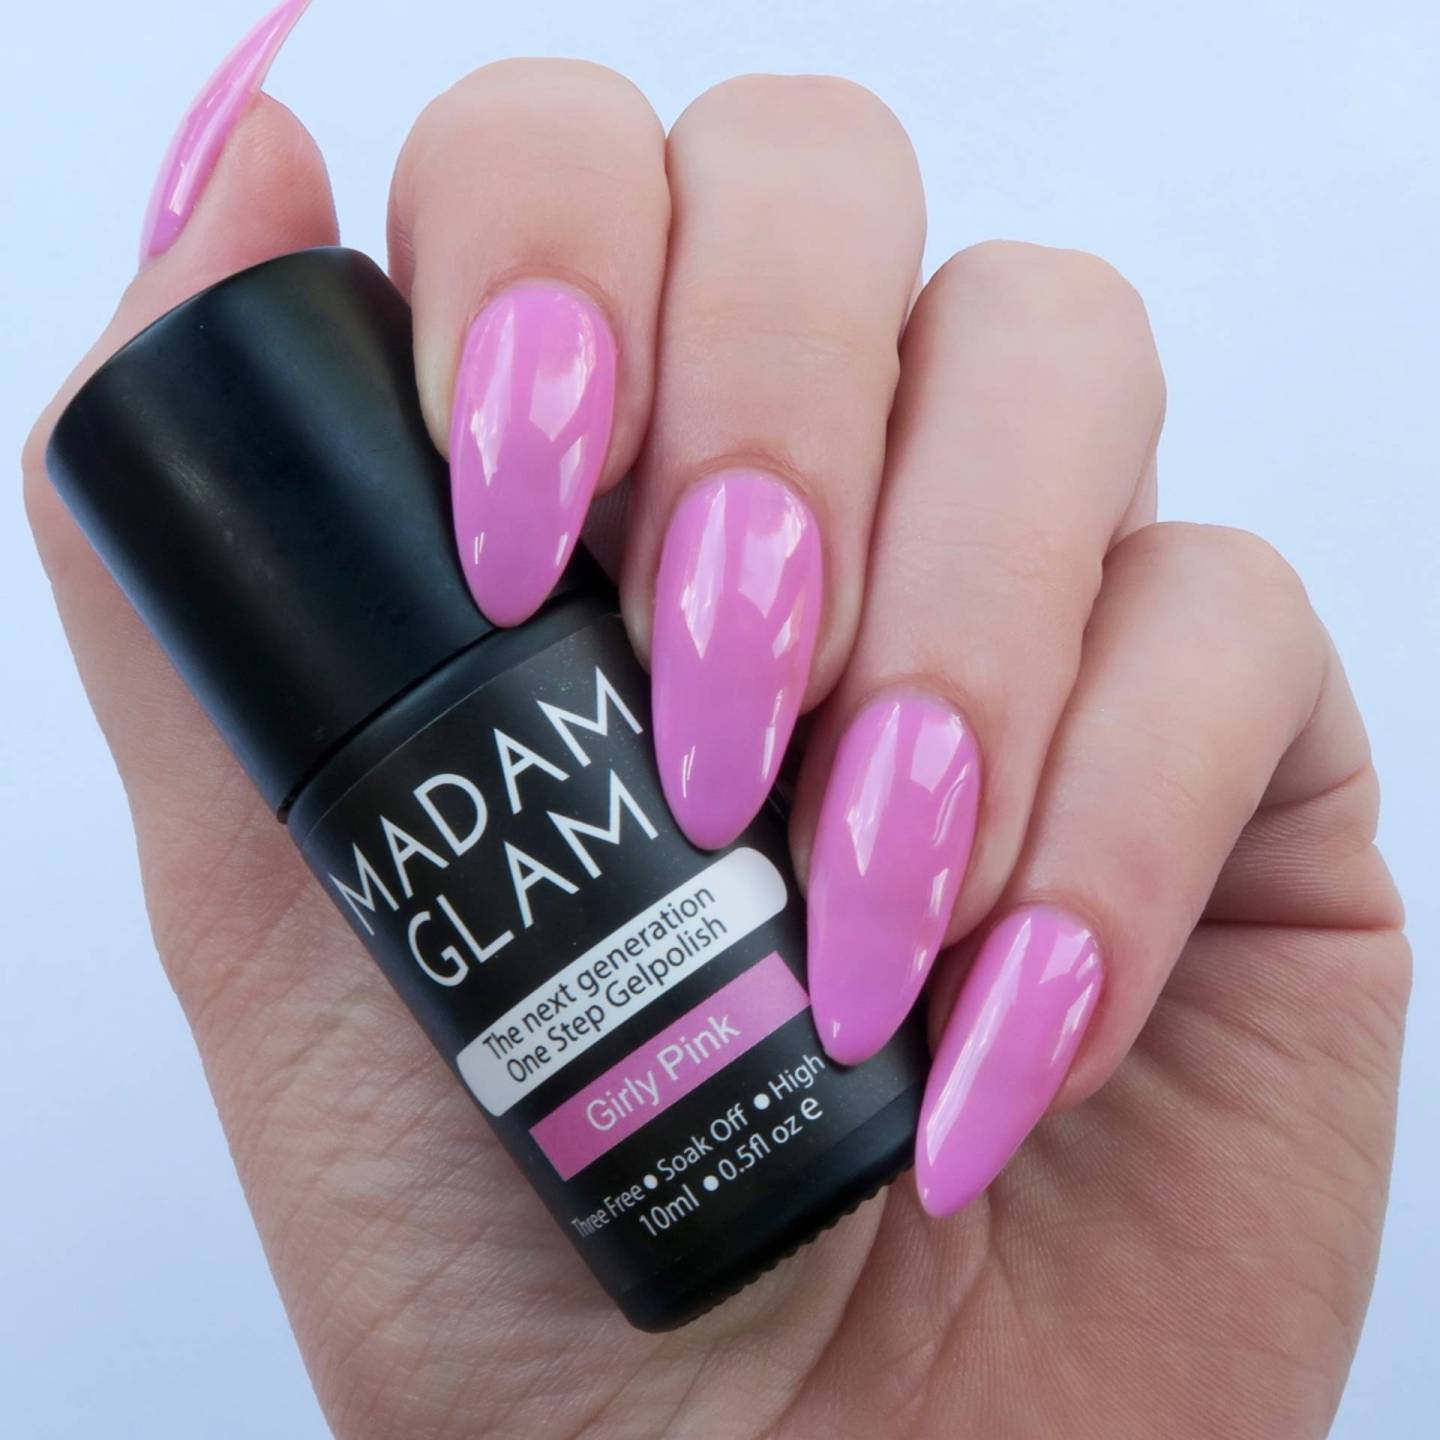 Madam-Glam-One-Step-Gels-Girly-Pink-1